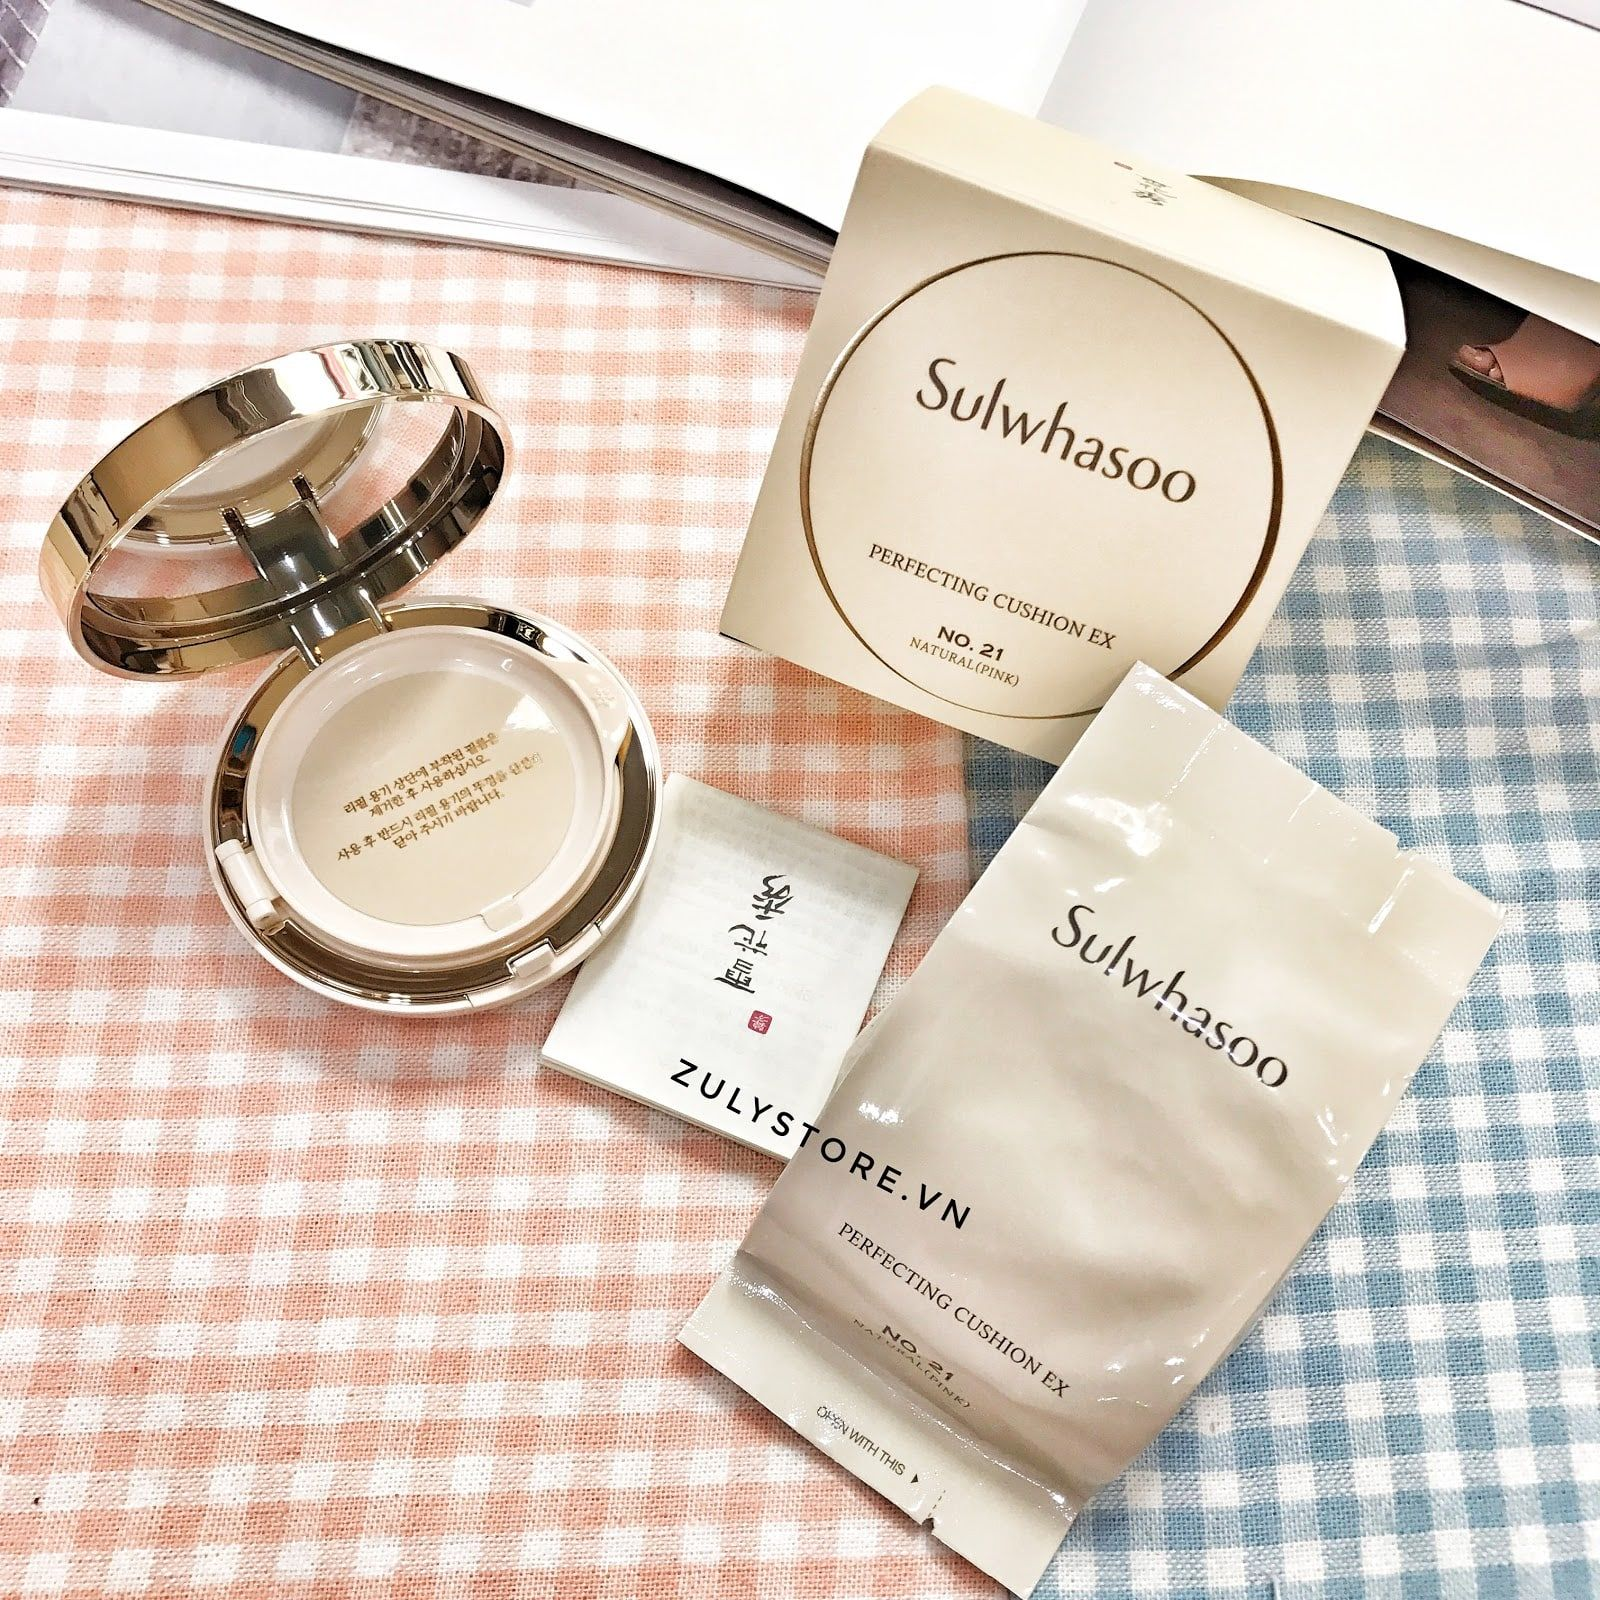 Sulwhasoo Perfecting Cushion Ex SPF